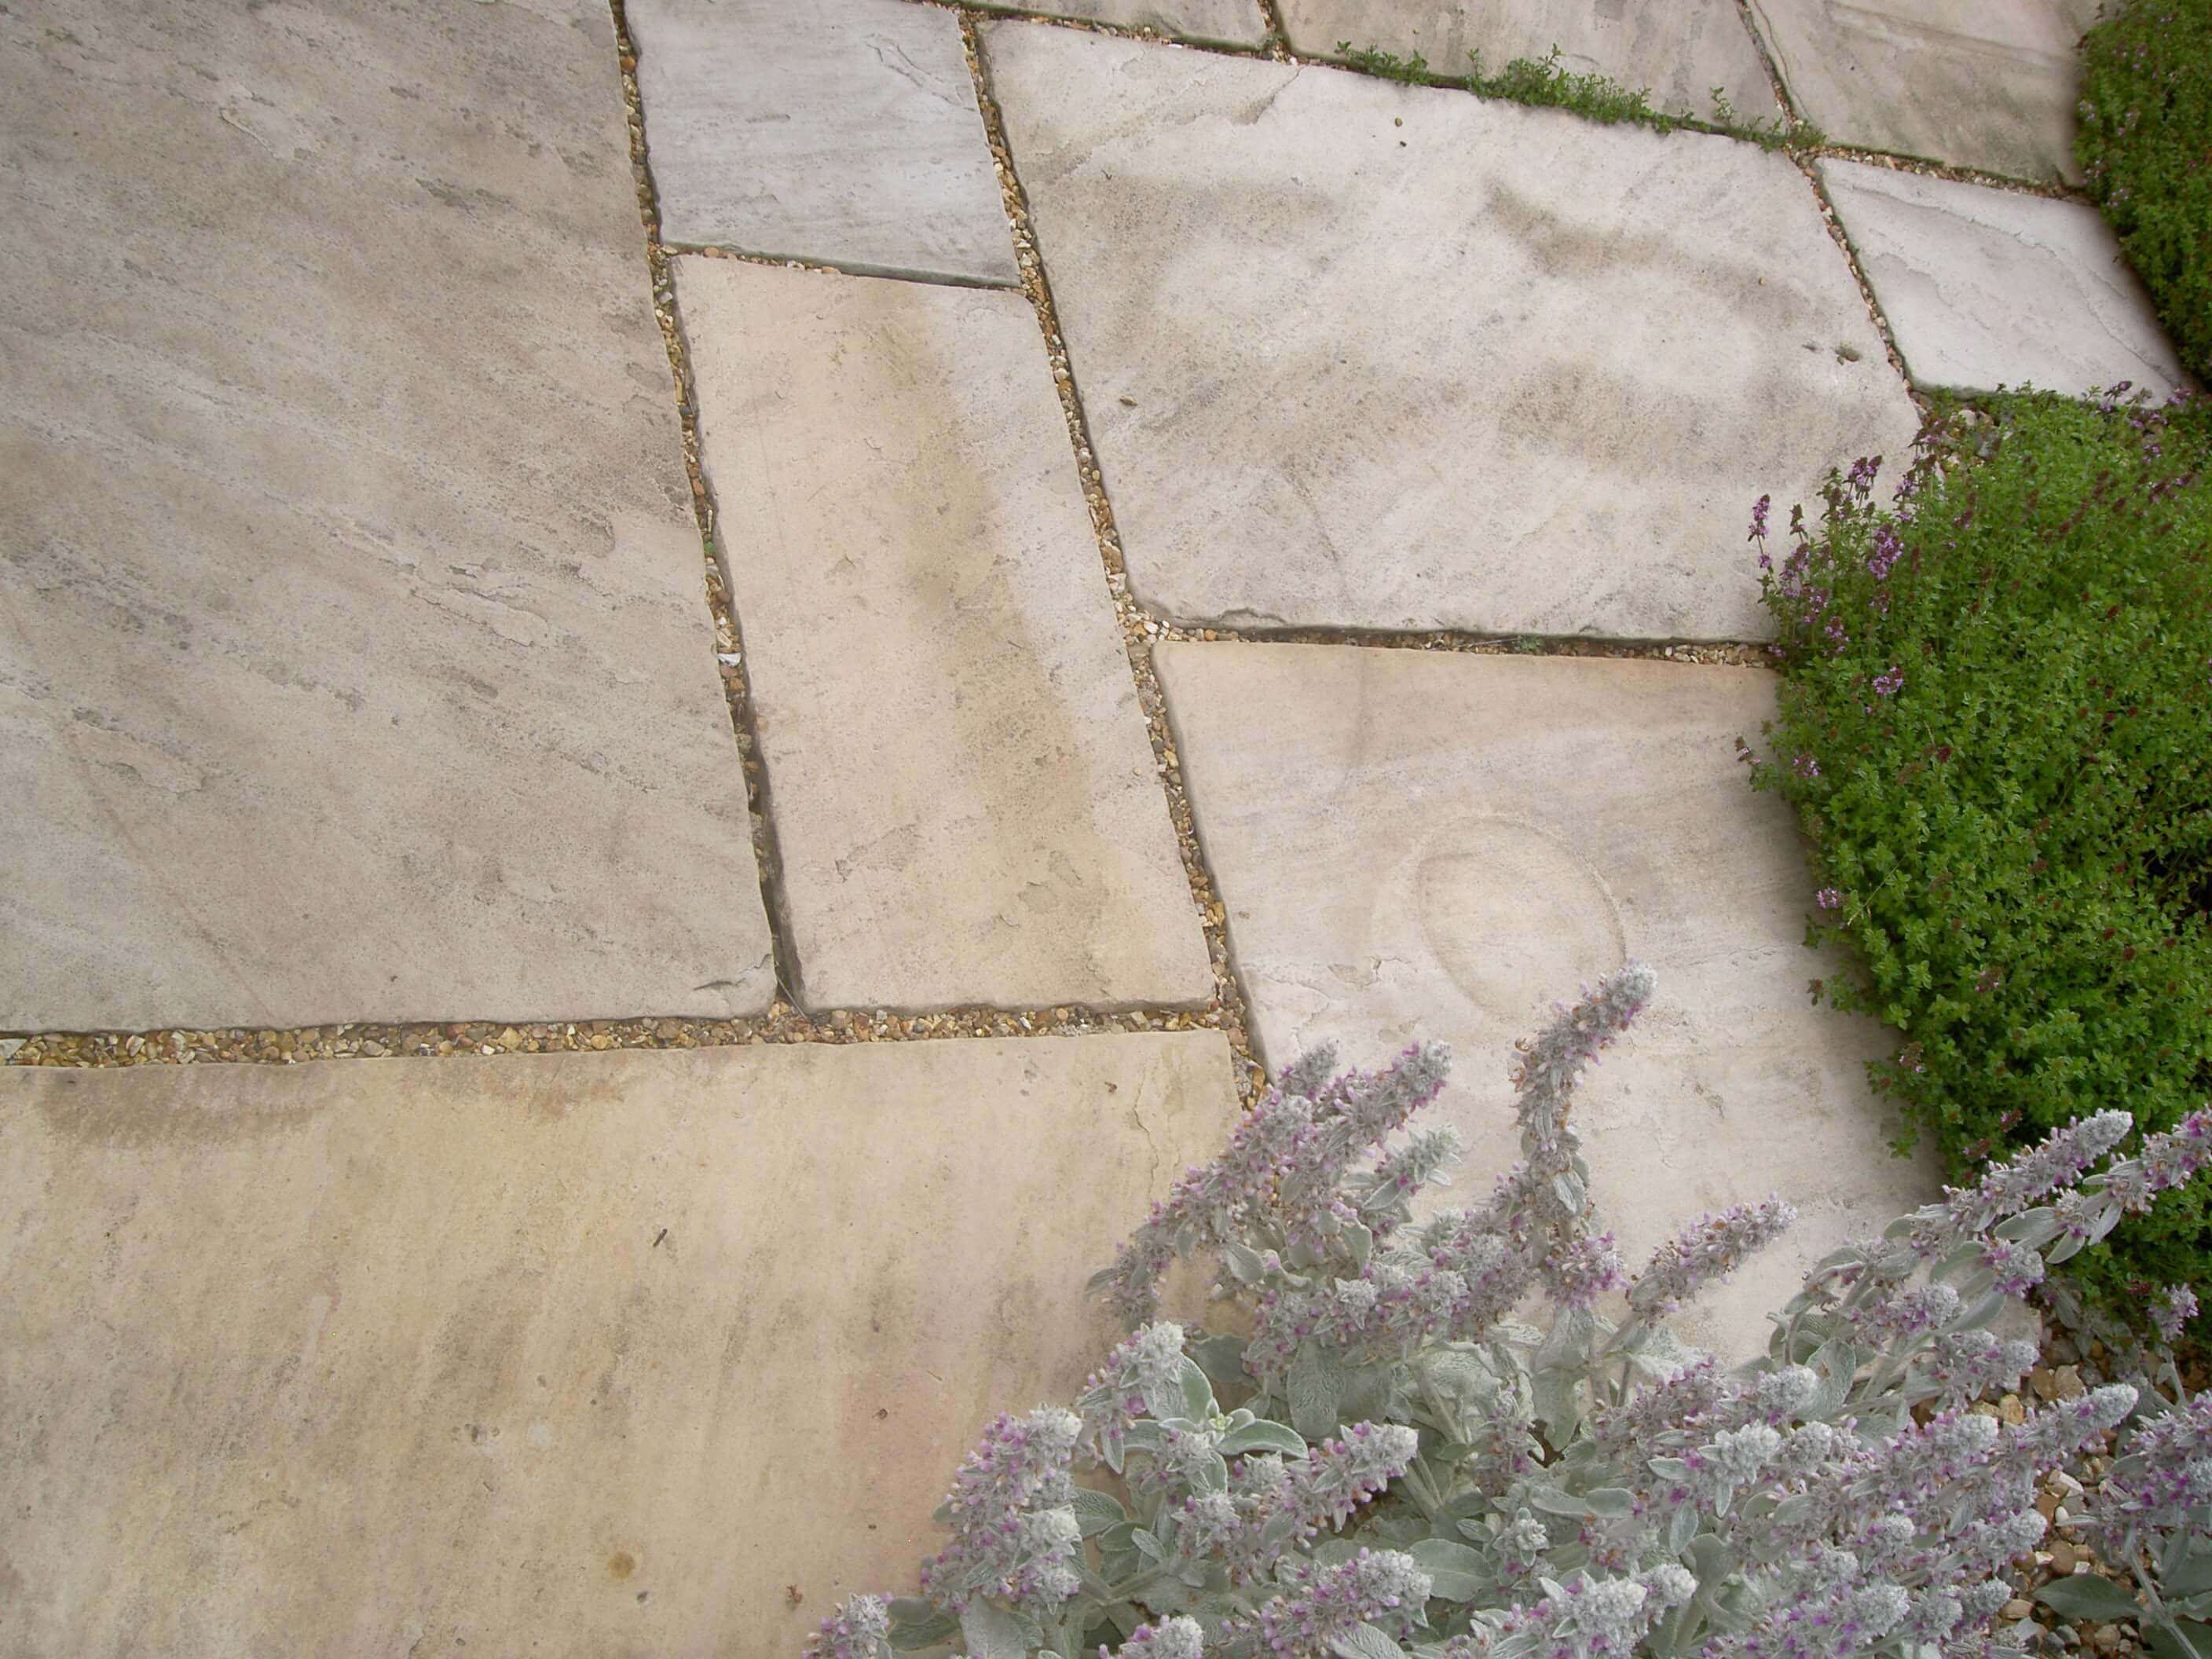 paving with gaps for growing plants